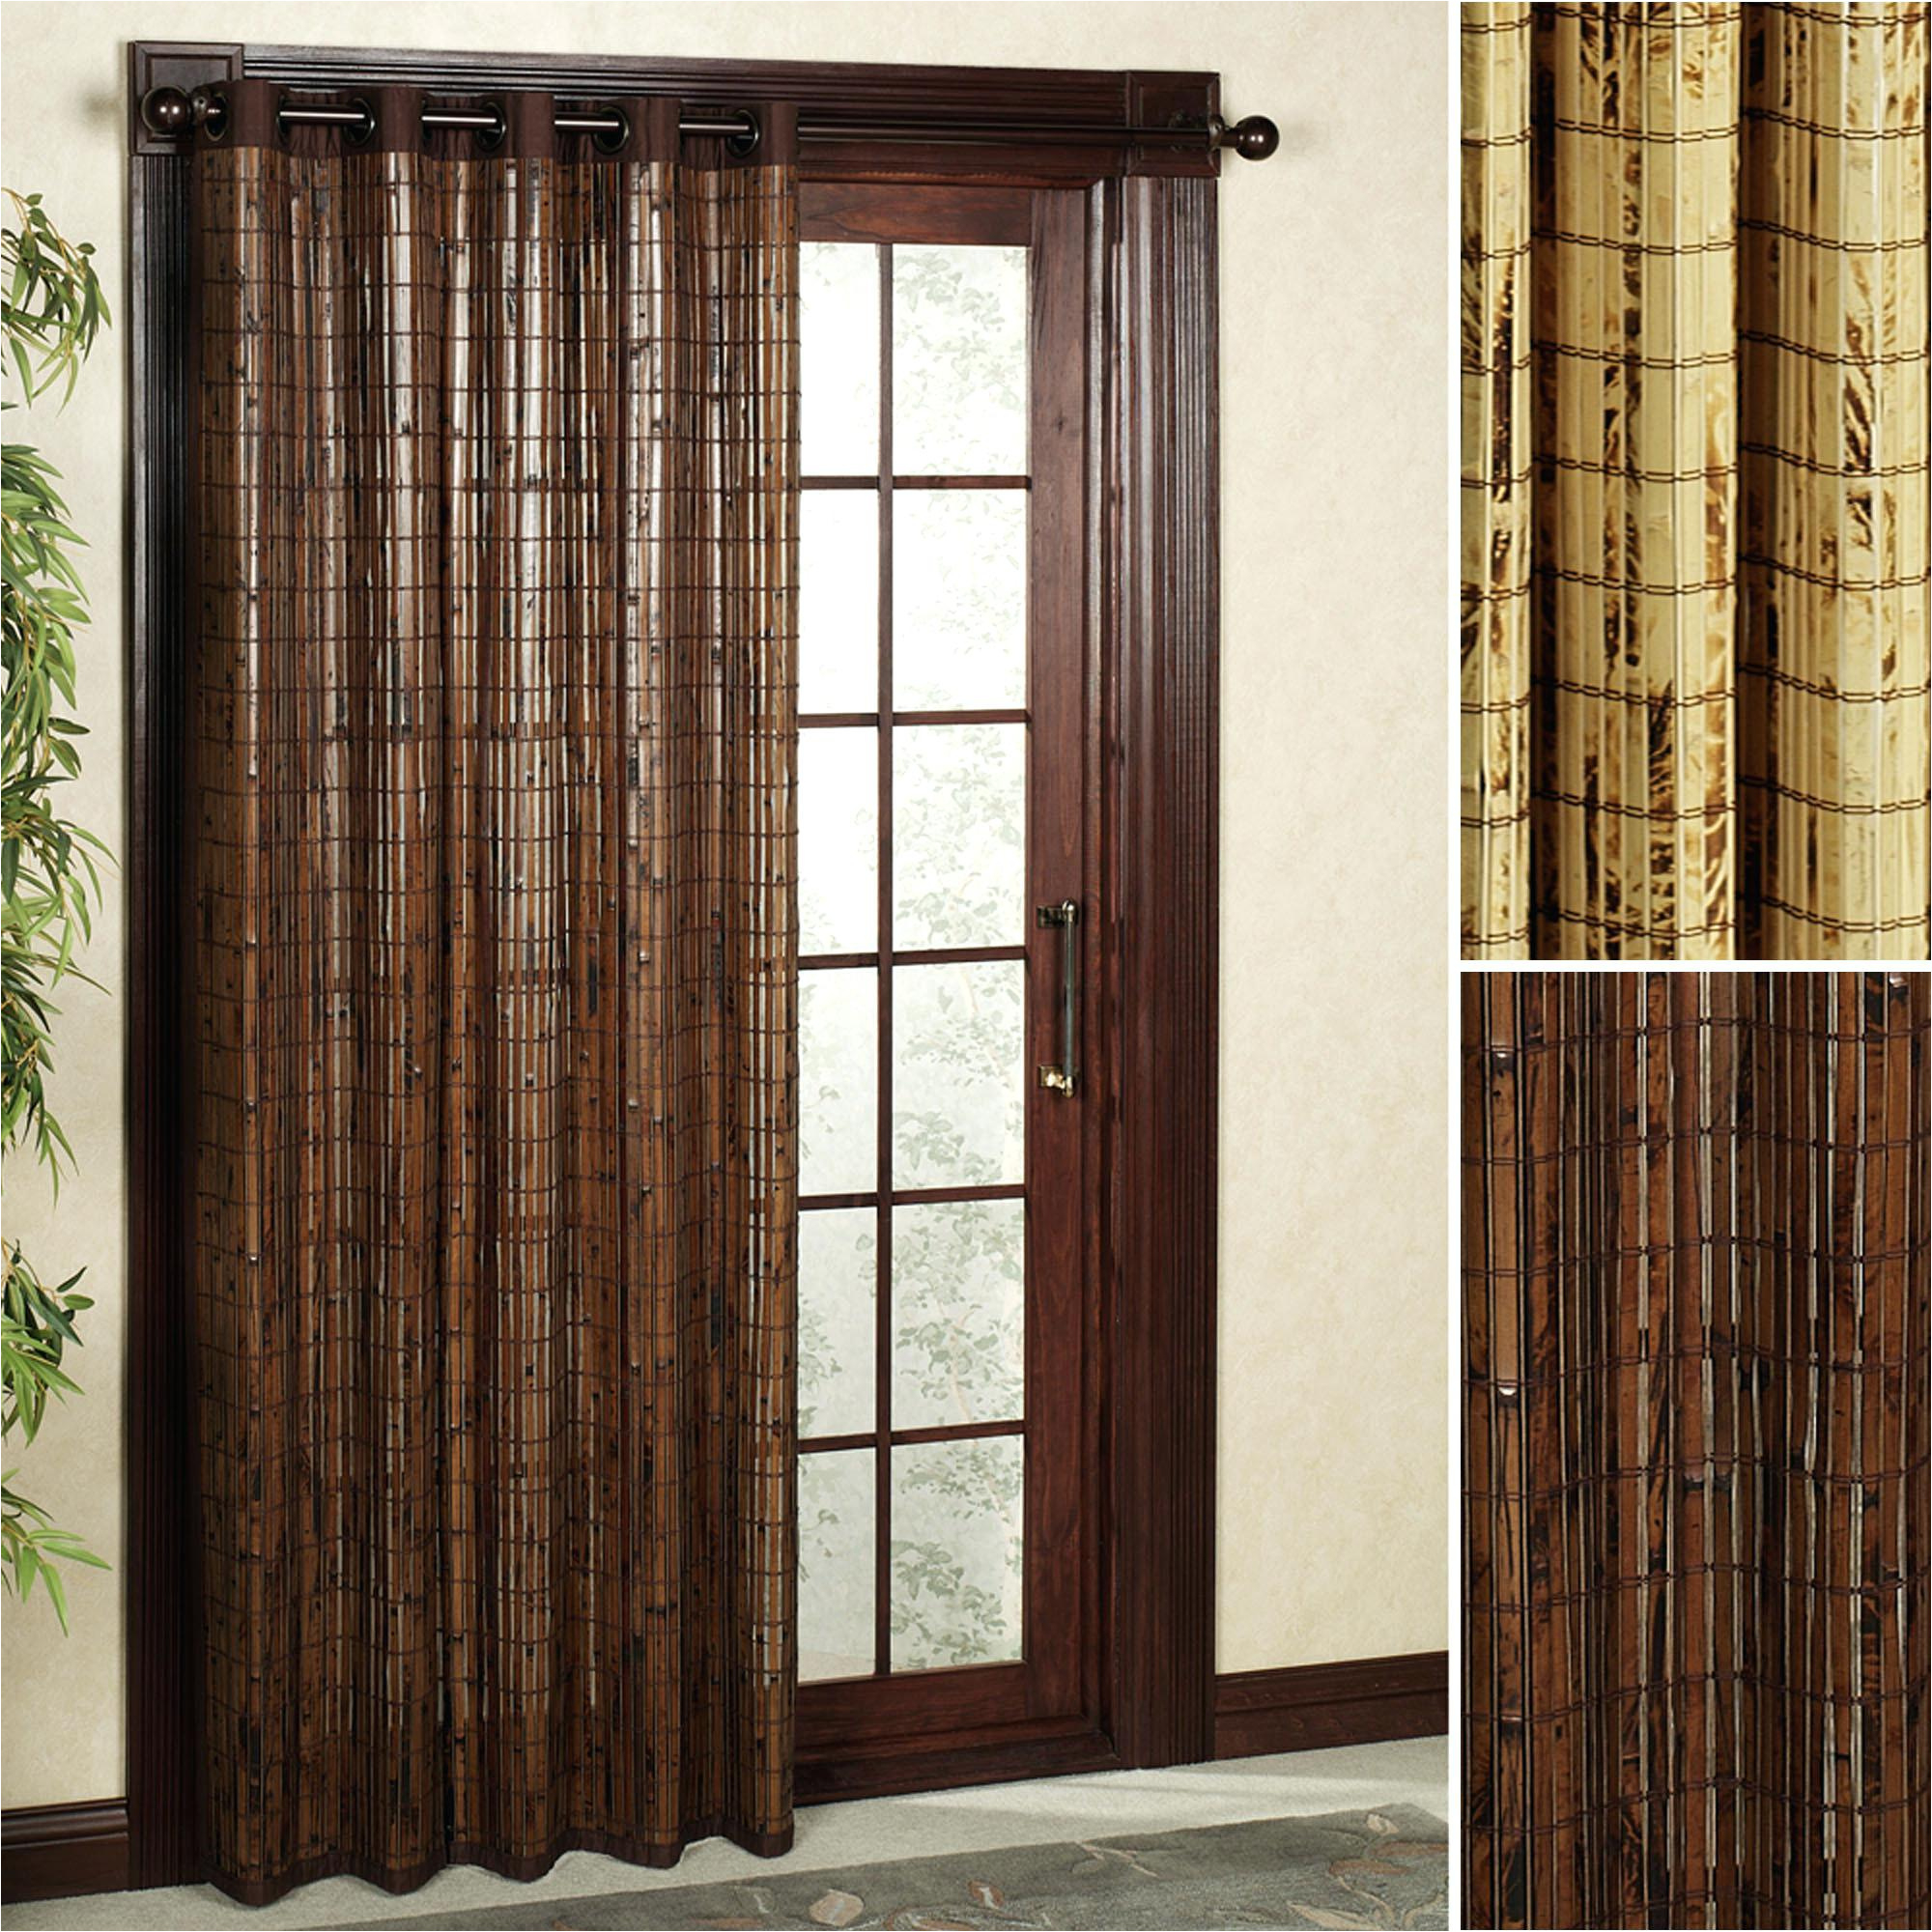 Lovely Lofty Slider Curtain Home Design New Best Of Sliding Drape Door with regard to Door And Window Design Image